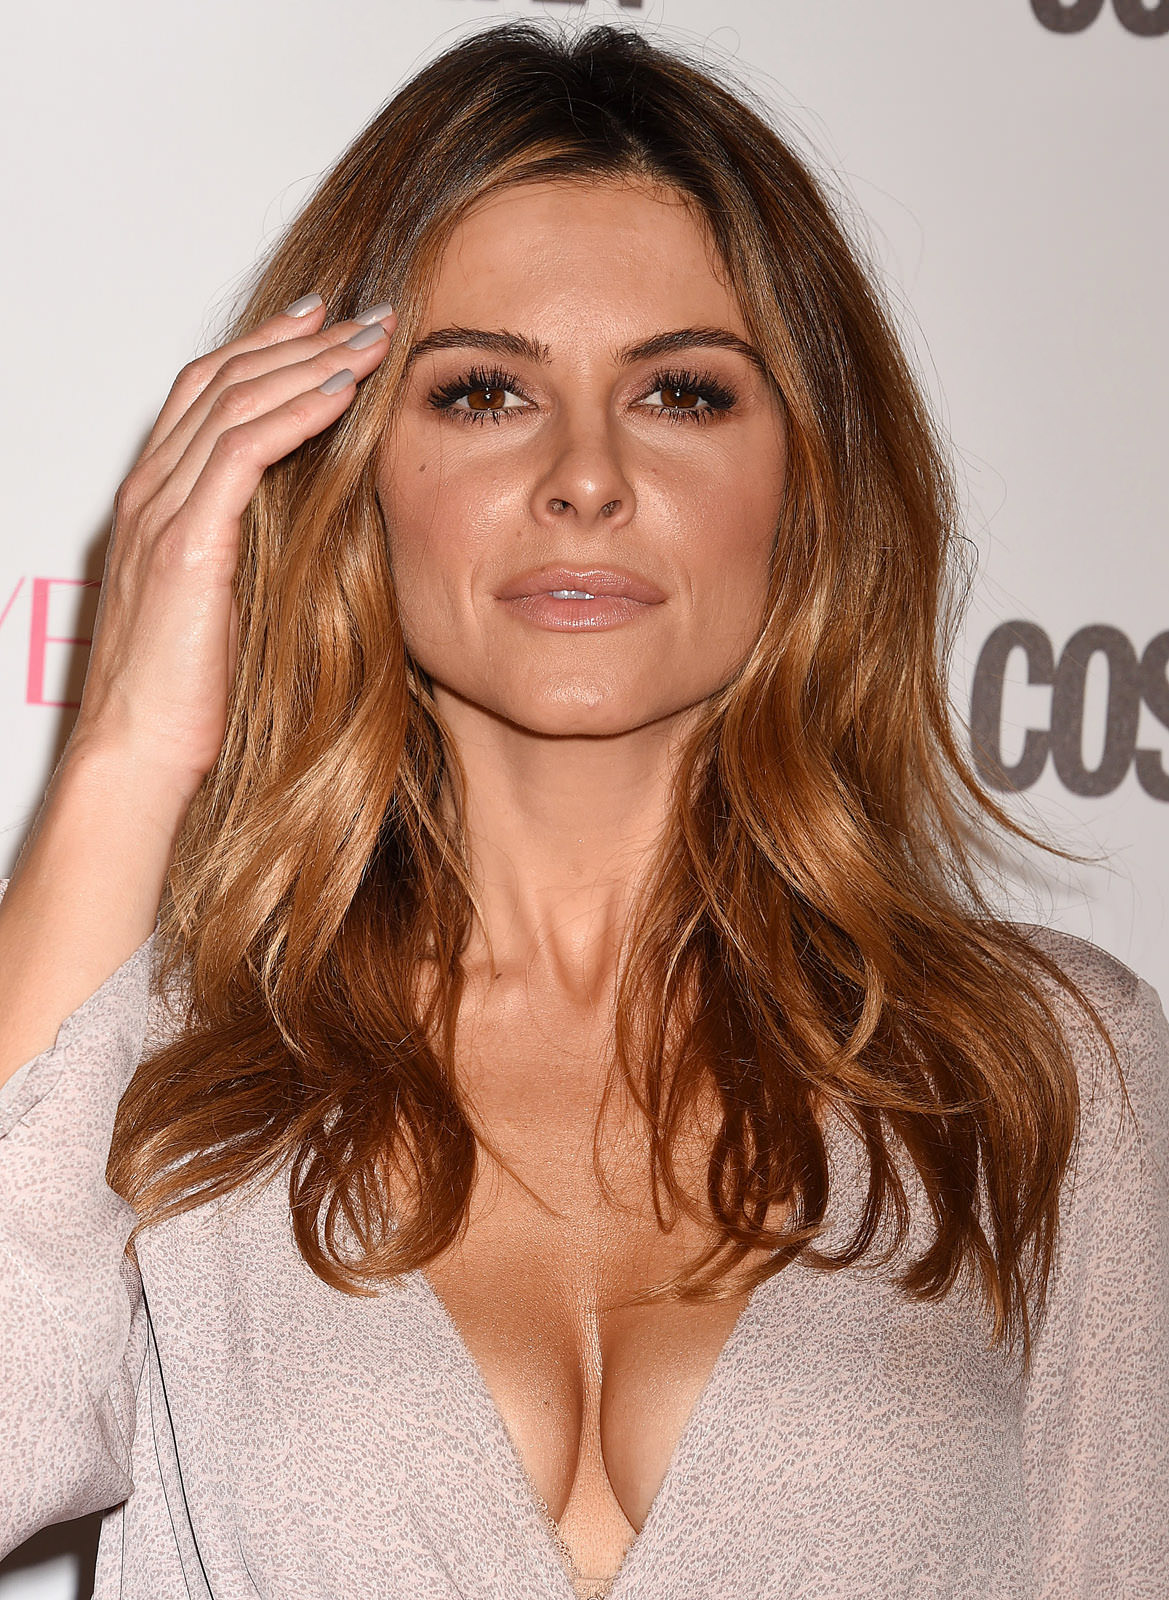 Maria Menounos Photo Gallery